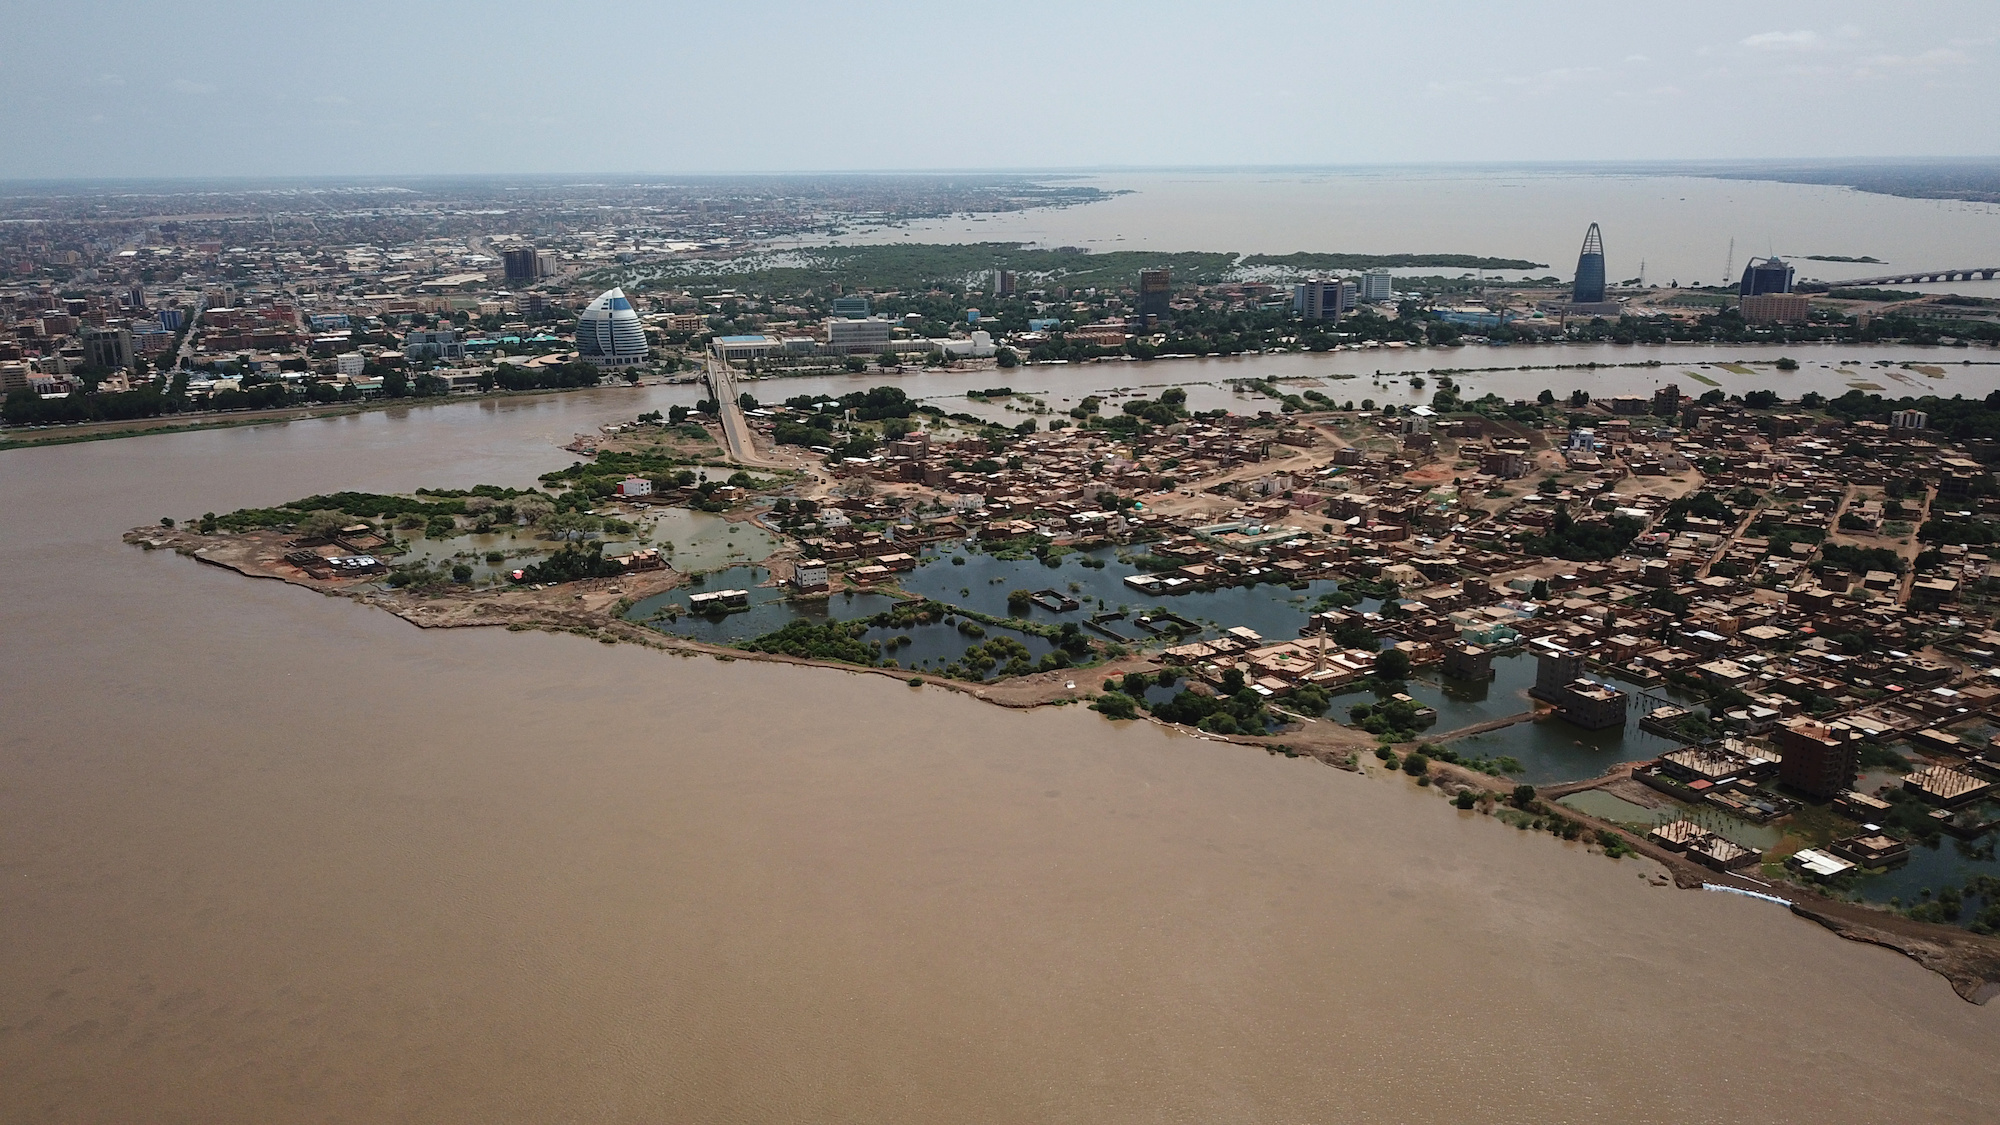 Aerial view of flooding in Khartoum Sudan